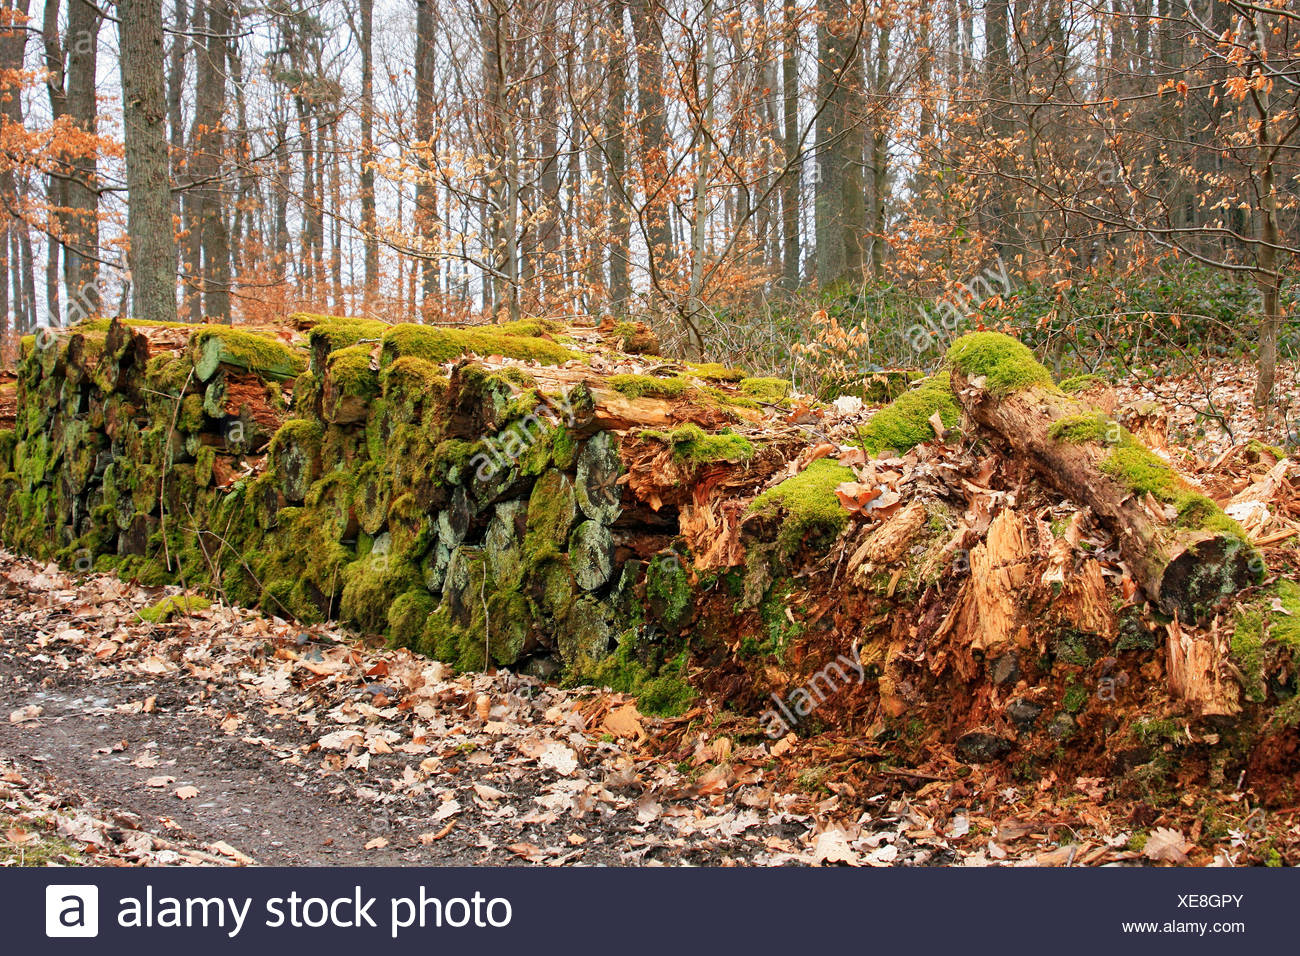 Moss couverts logpile pourrir à côté d'un chemin forestier, gaspillage des ressources naturelles Photo Stock